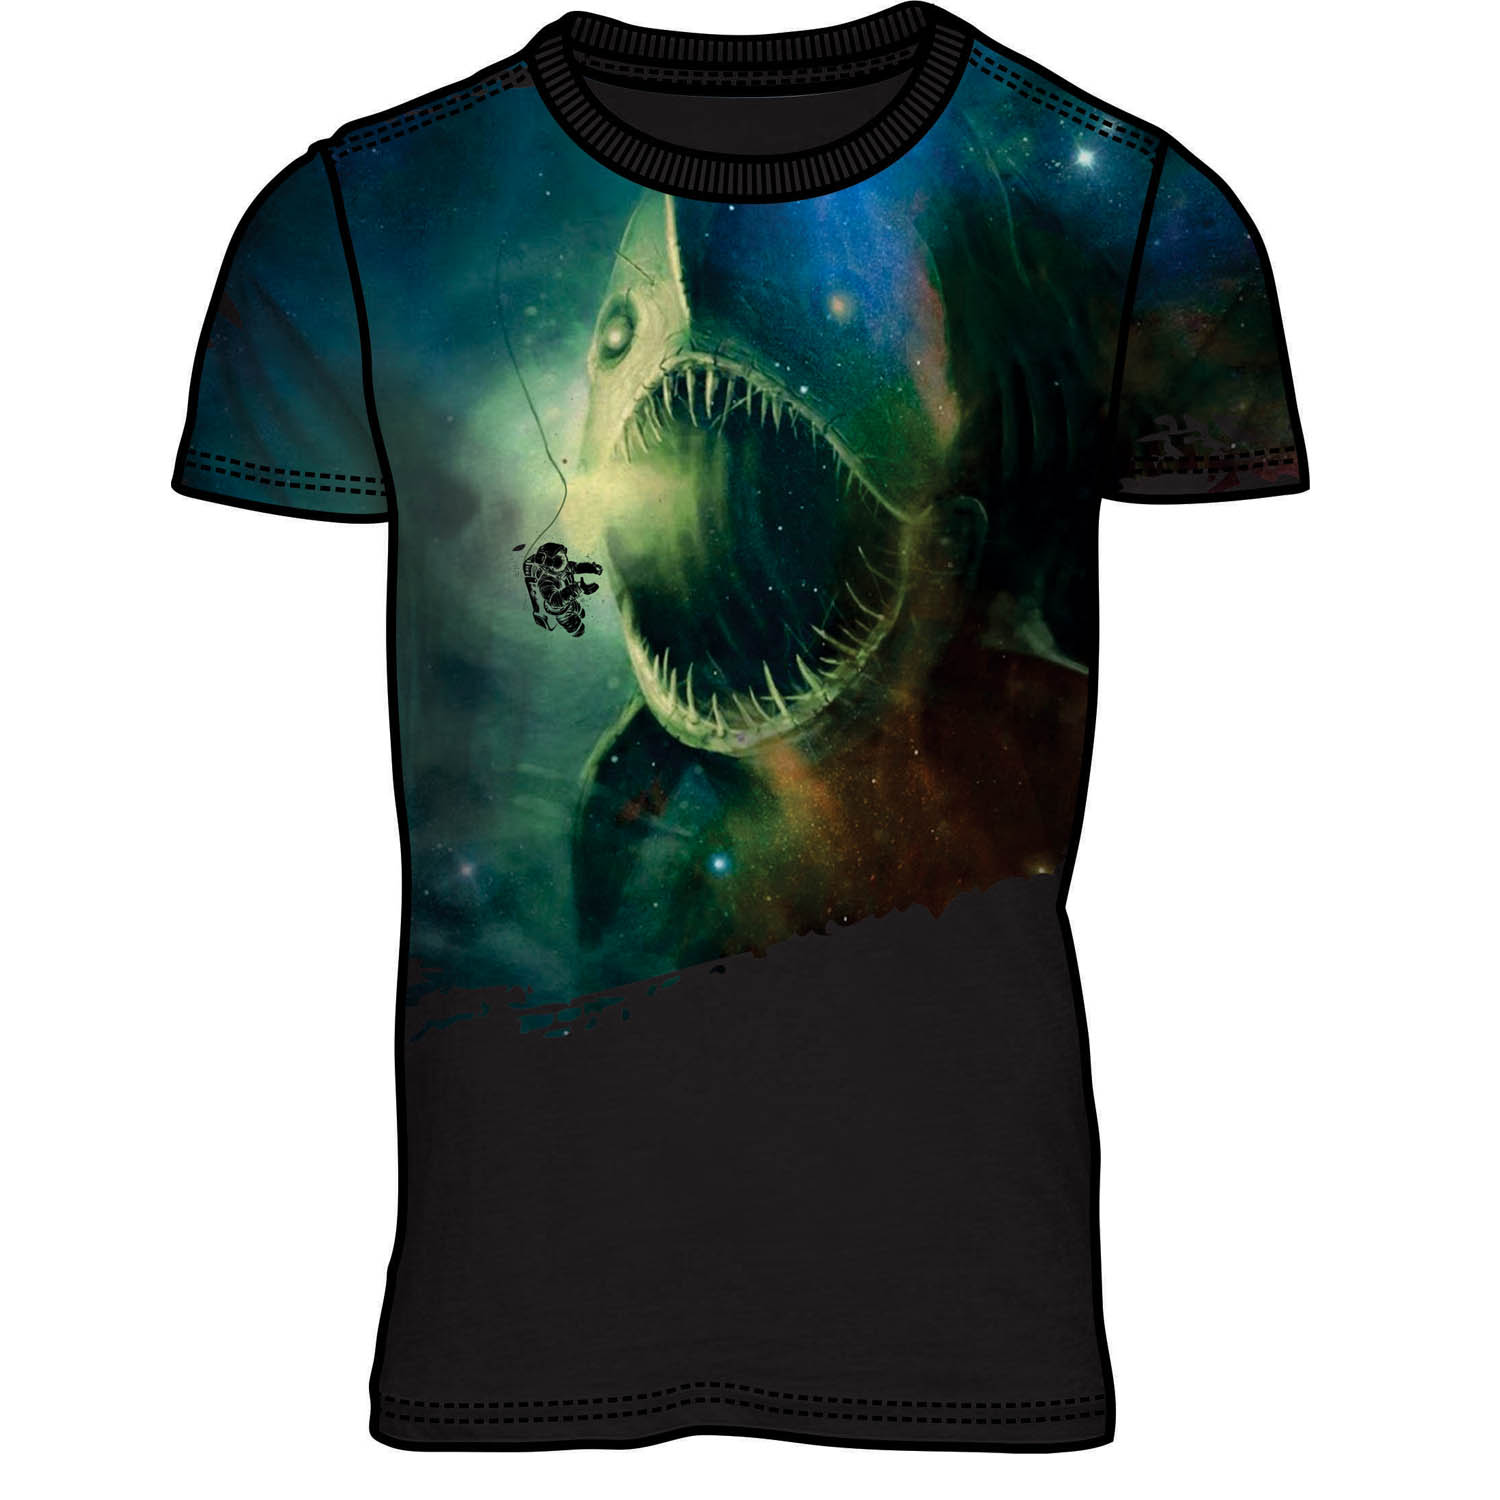 Serious modern t shirt design for earthient by for Modern t shirt designs